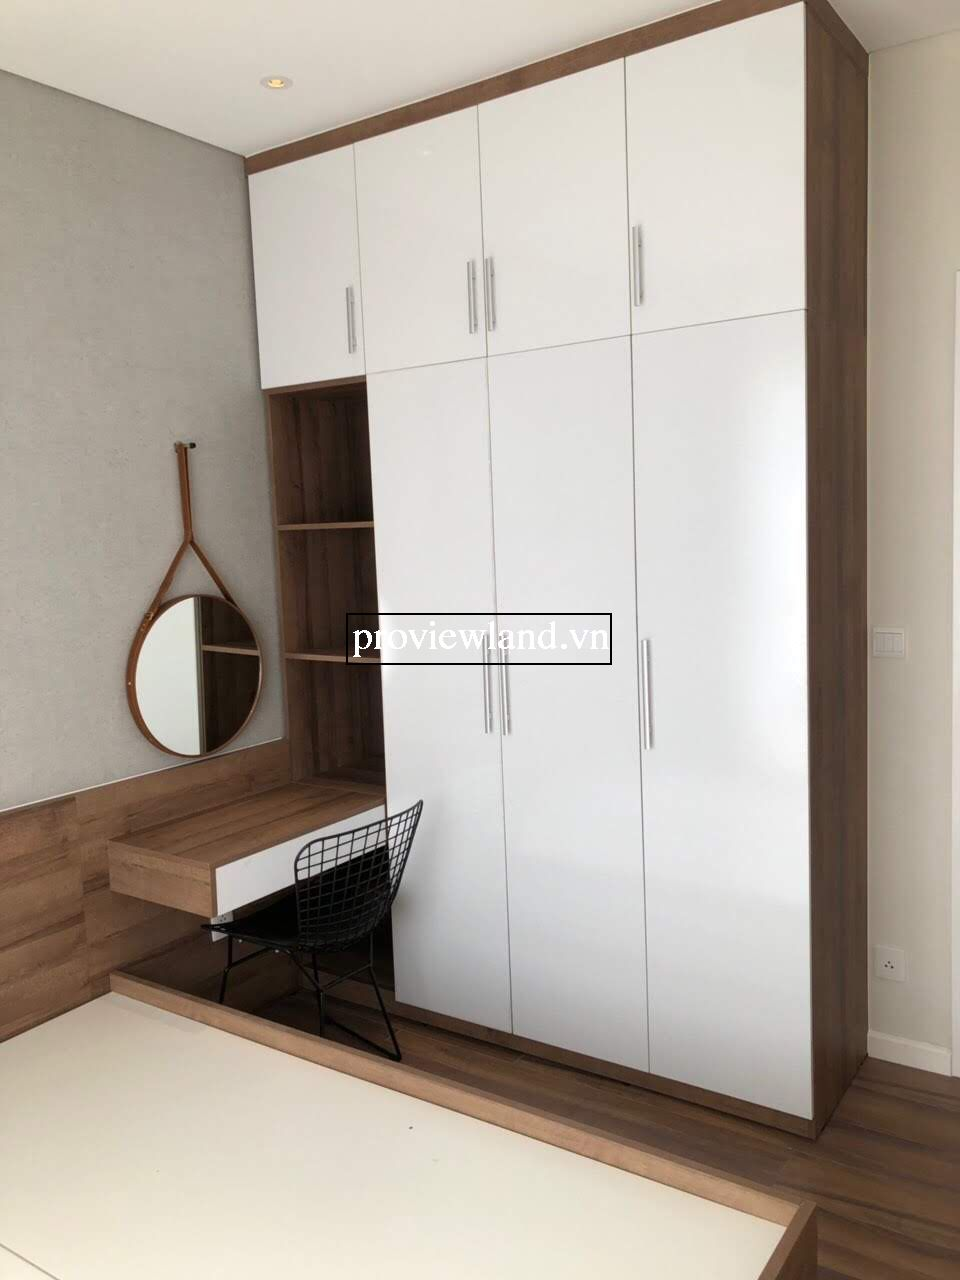 Diamond-Island-apartment-for-rent-3brs-proview-1500-04